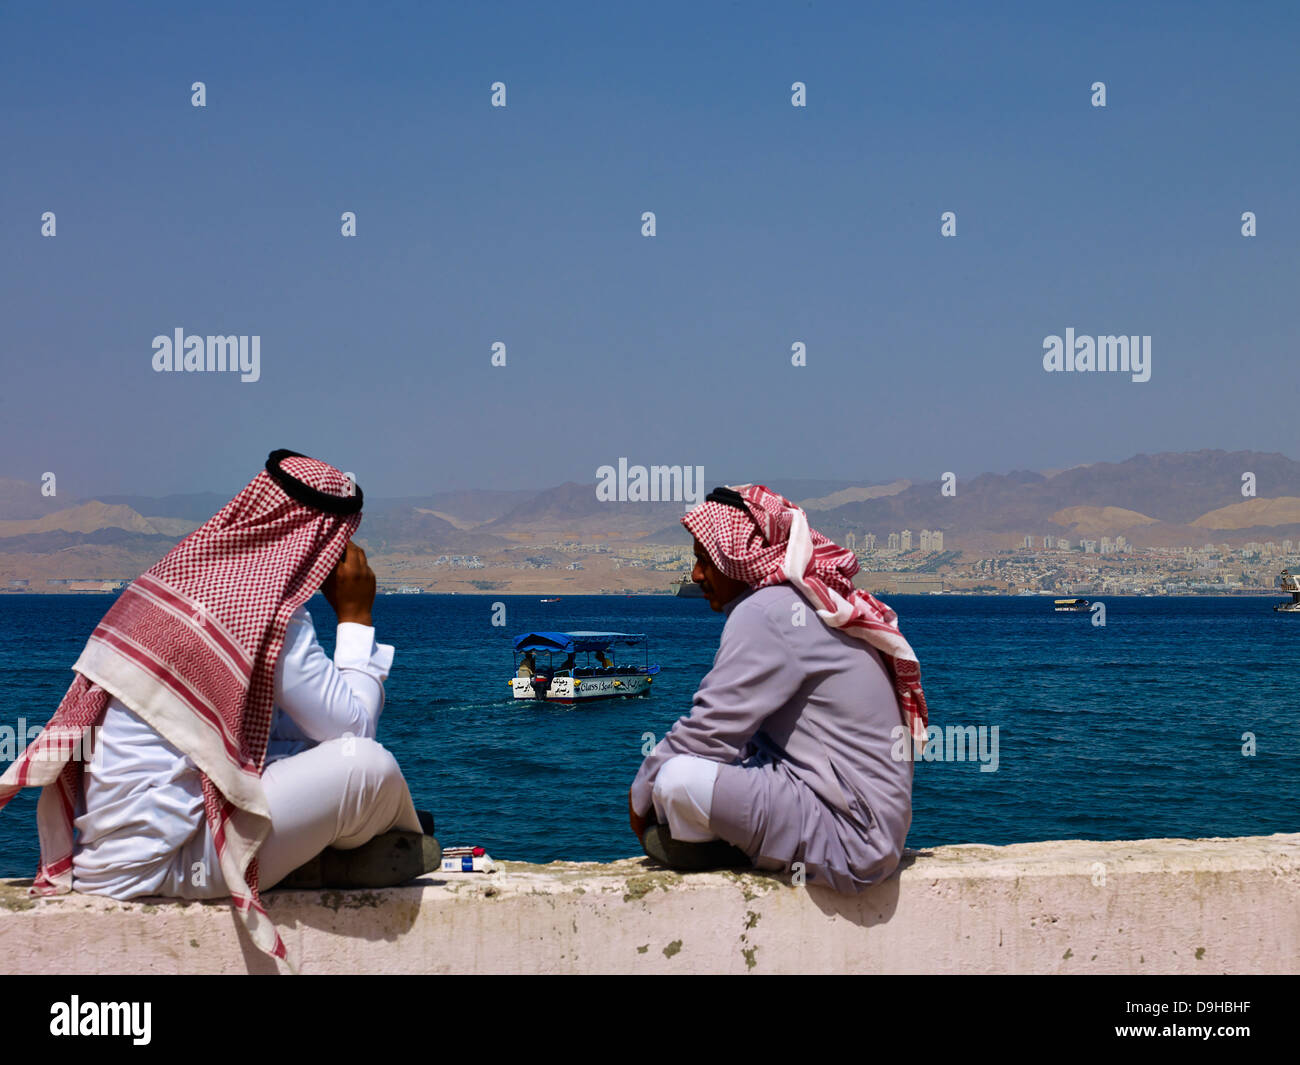 Two Bedouins in the Gulf of Aqaba, Jordan, Middle East - Stock Image